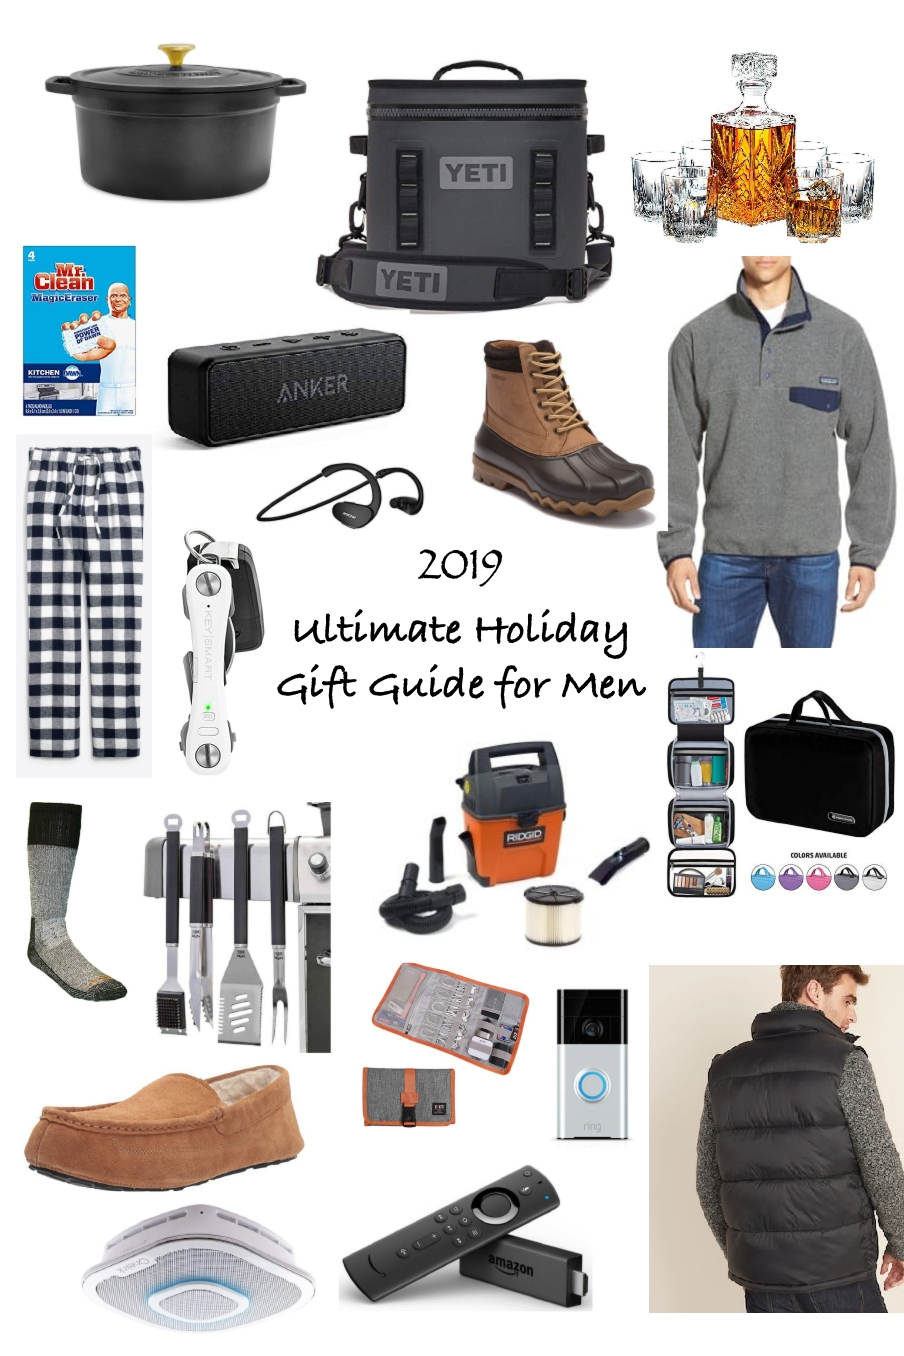 2019-ultimate-holiday-gift-guide-for-men